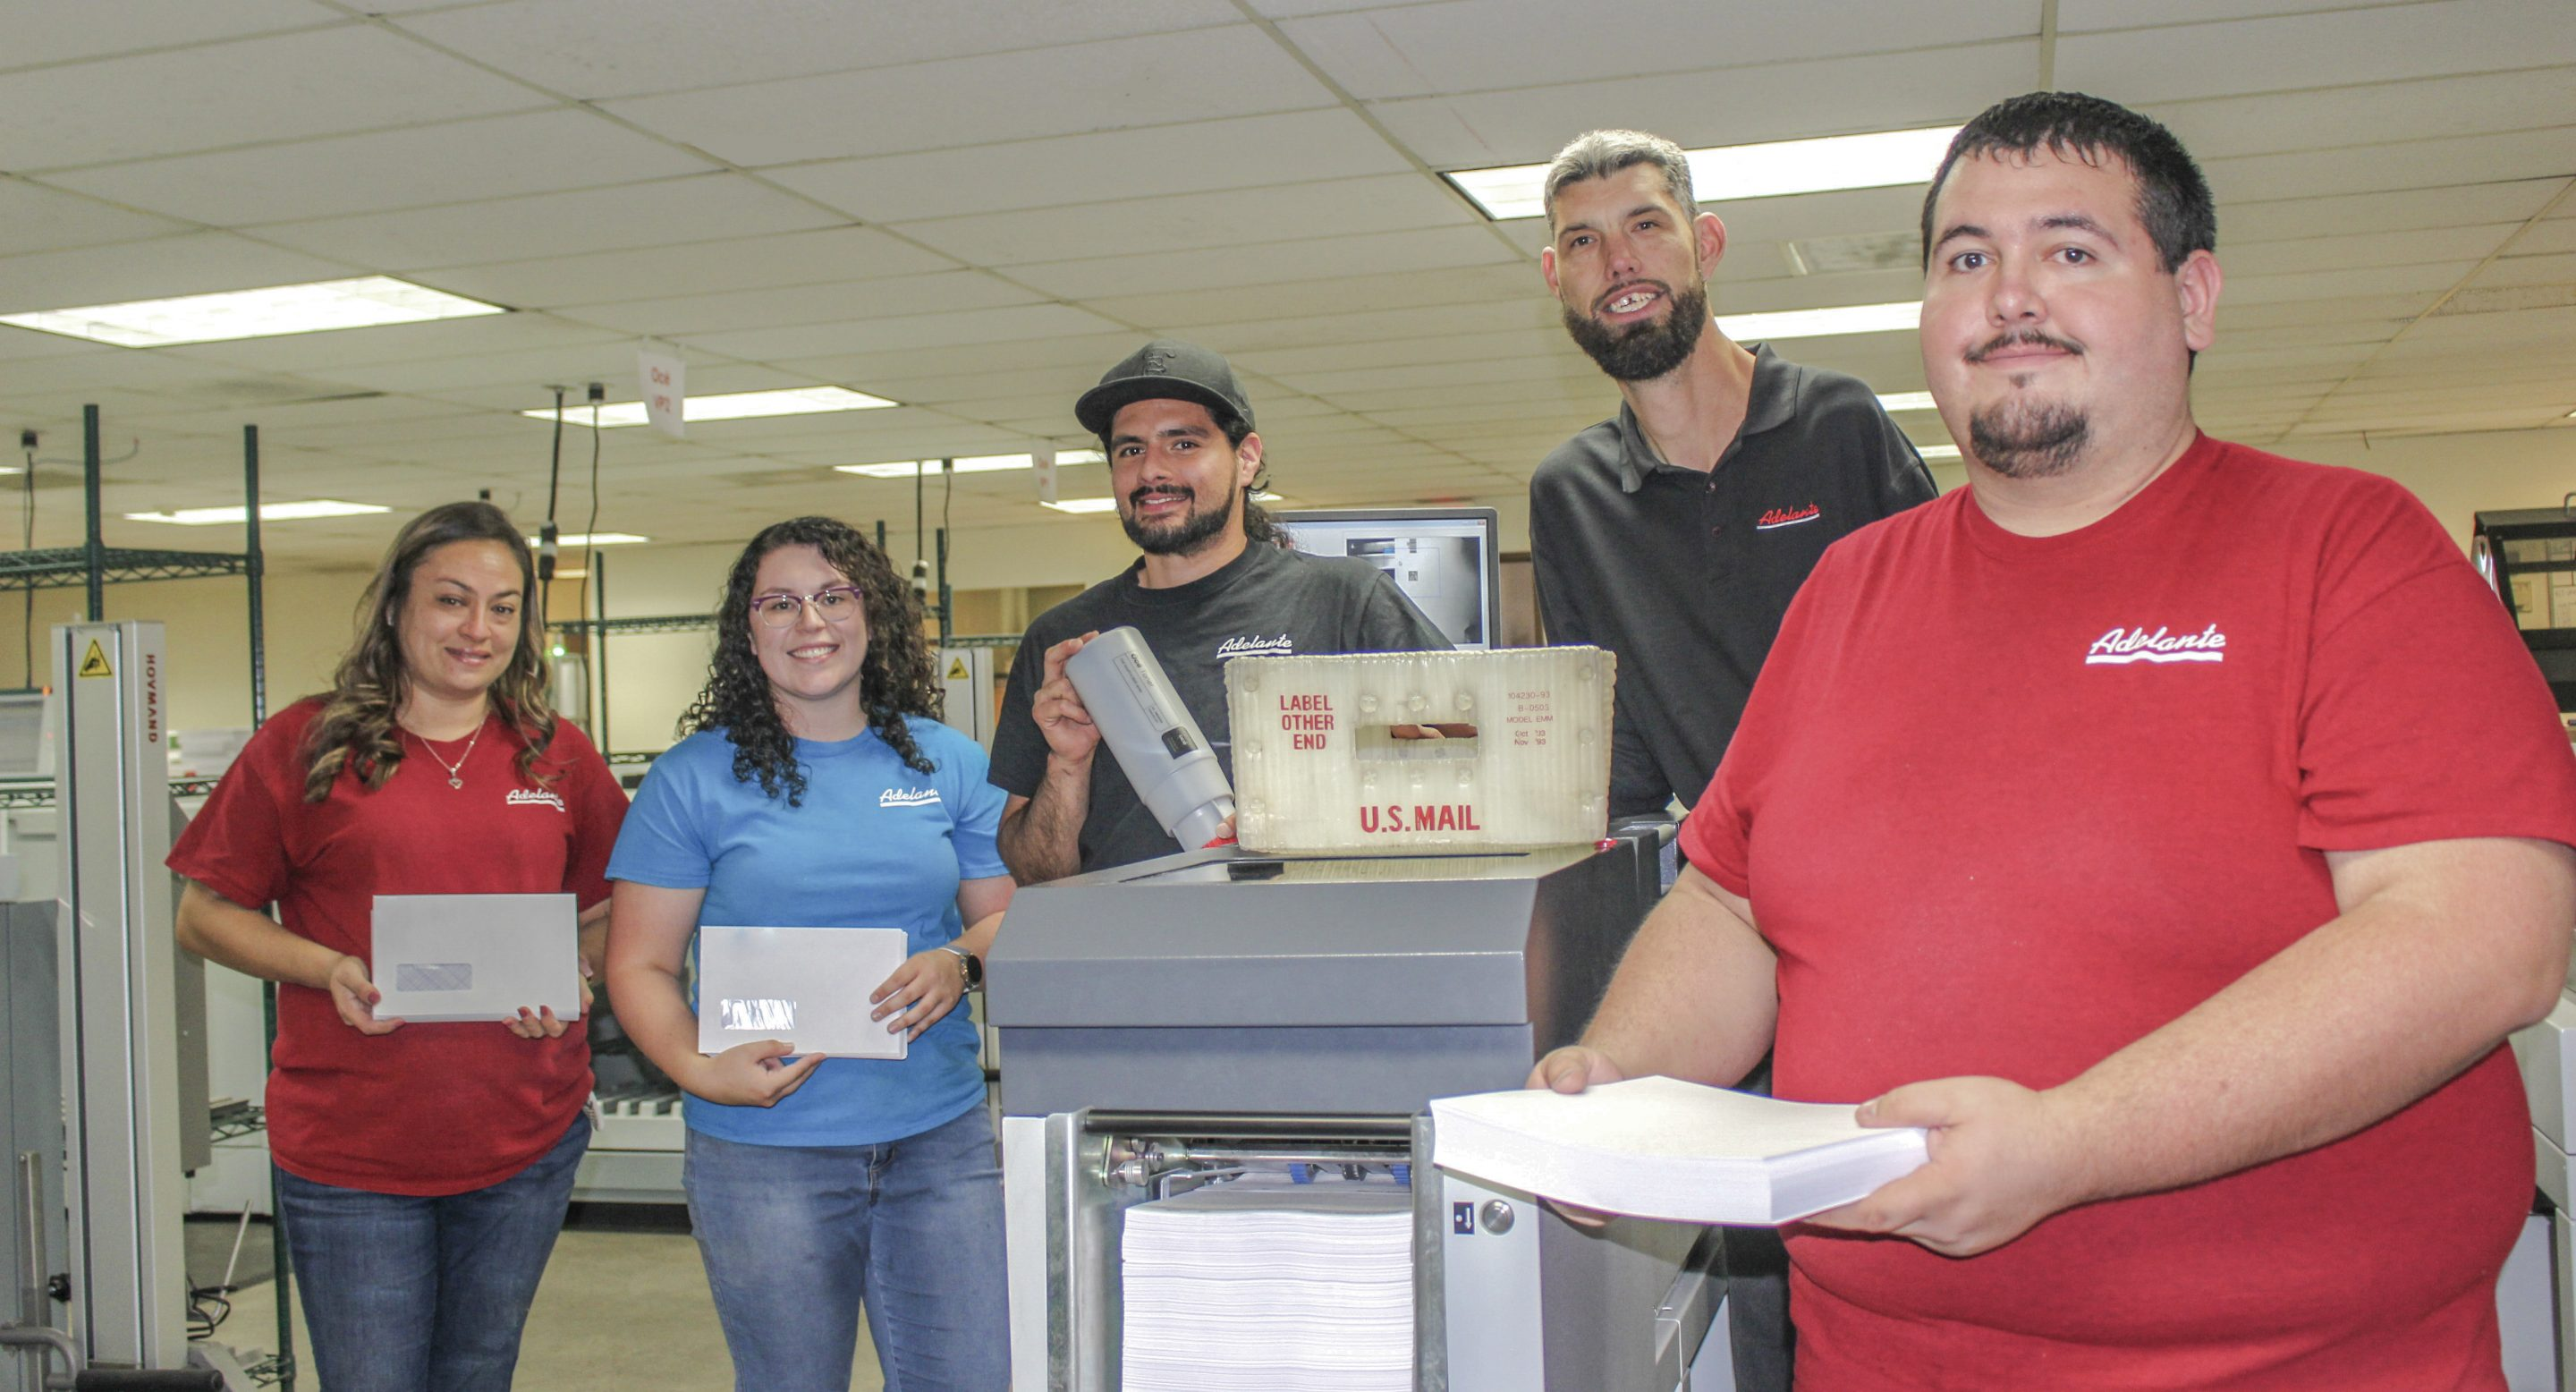 Five people are standing in a line around mailing equipment, smiling for the camera. There are two women on the left and three men on the right. They are holding mailing supplies.